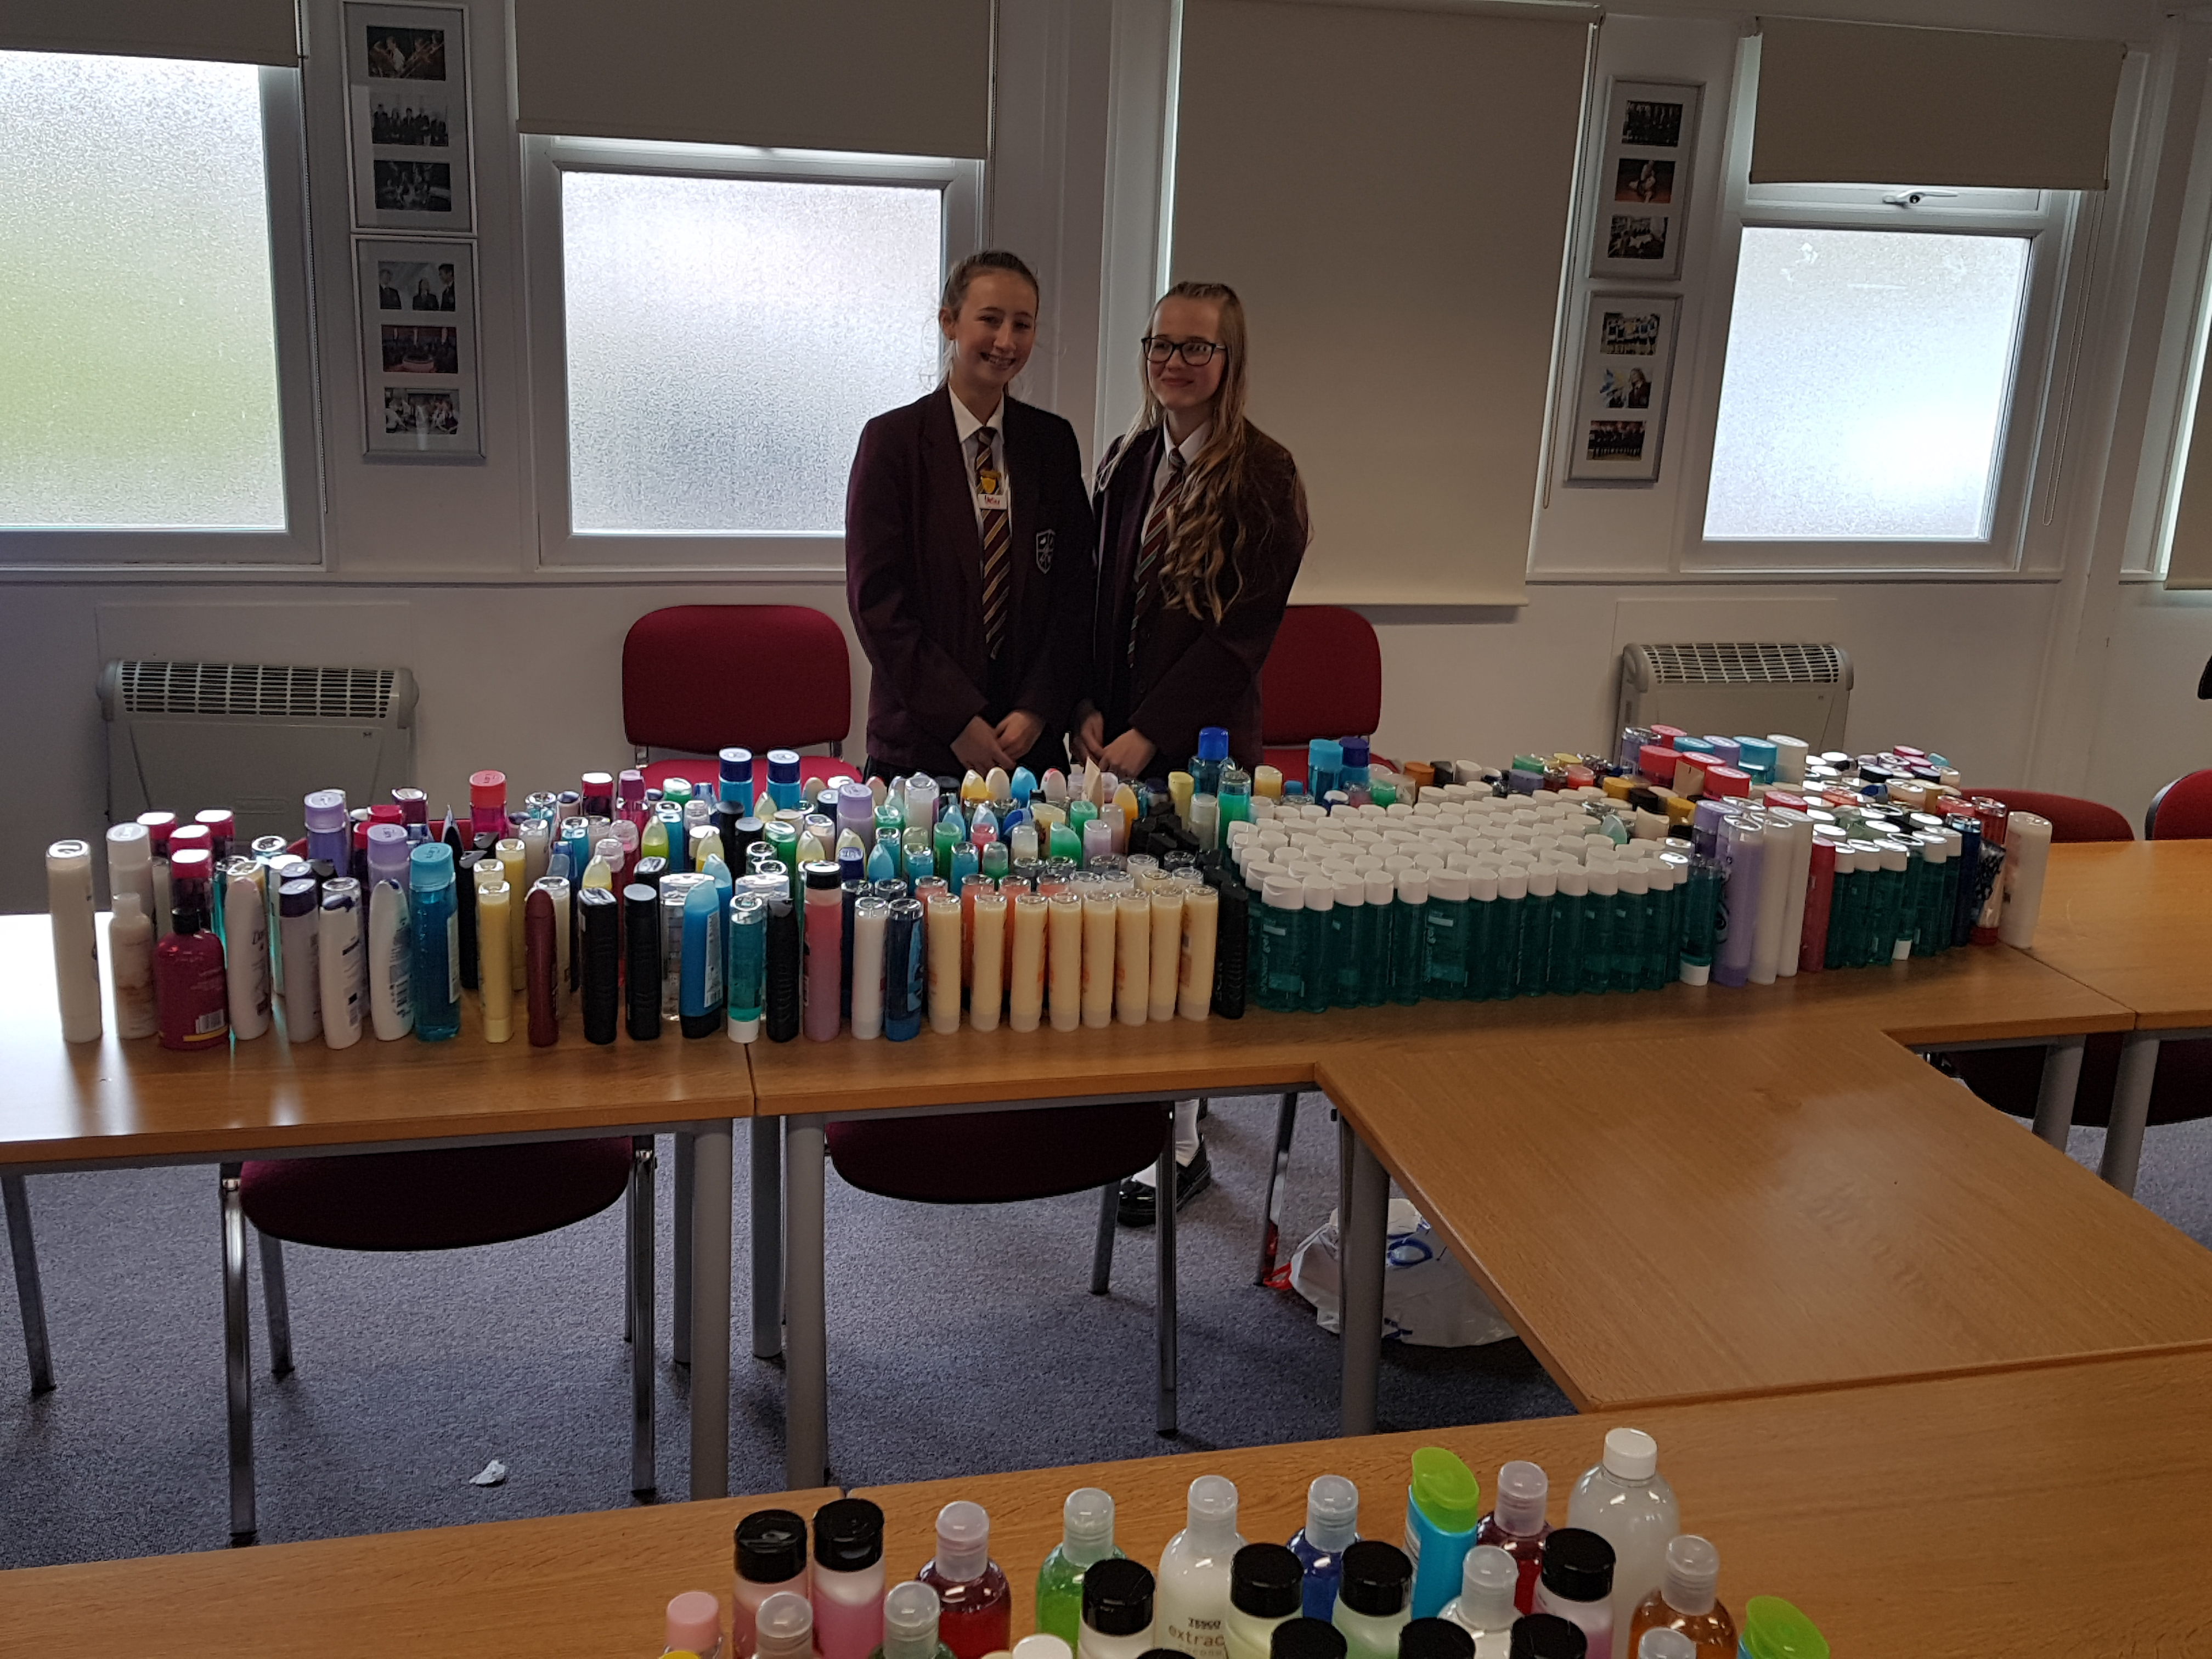 Year 9s was the winning year collecting over 600 shower gels!